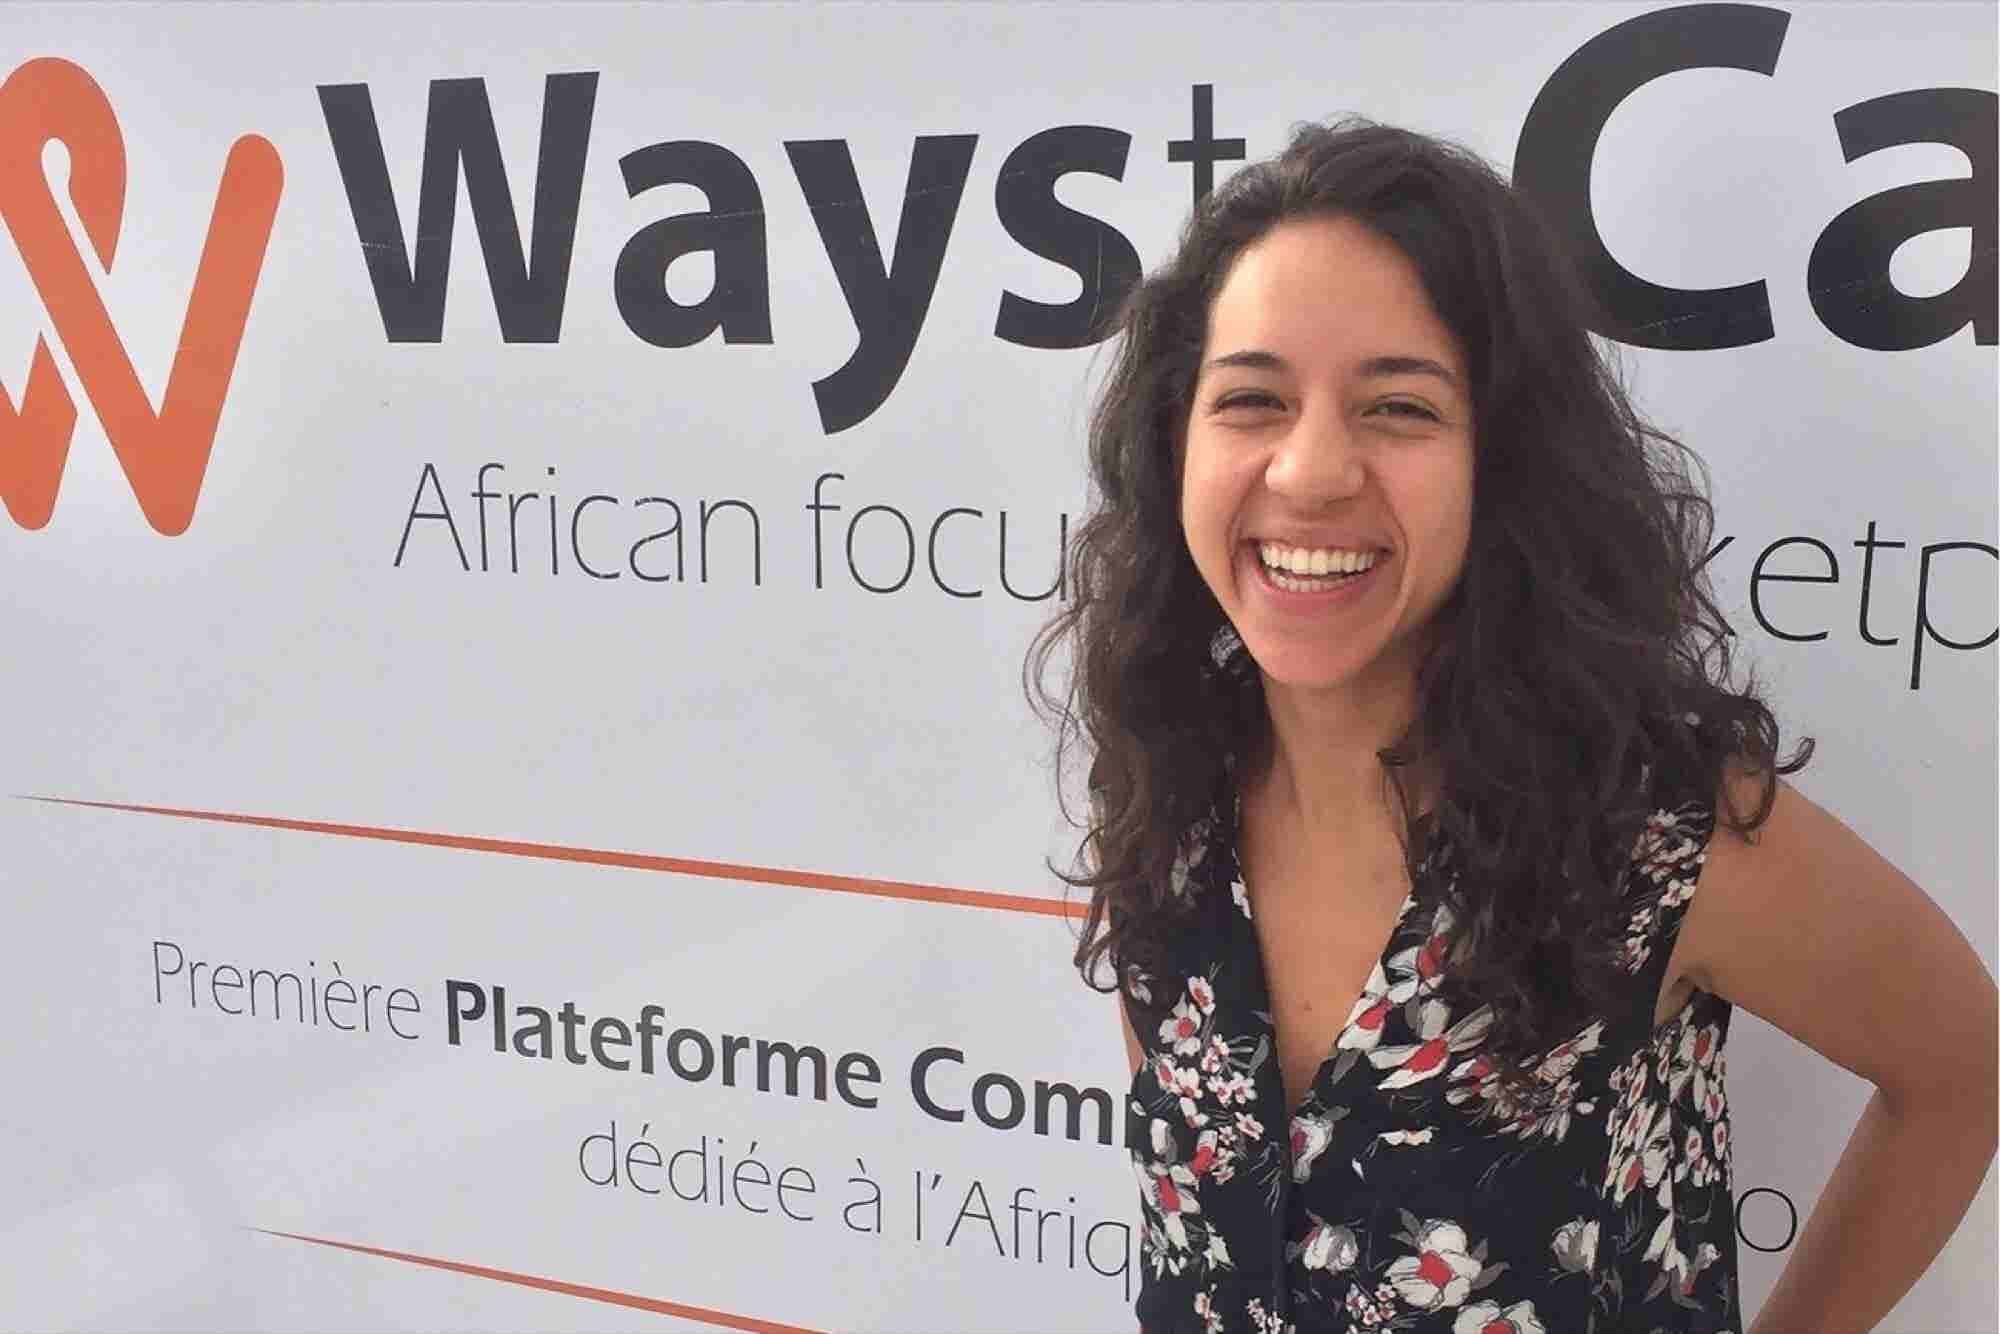 Moroccan Startup WaystoCap Is Enabling Africa's Businesses To Trade Be...